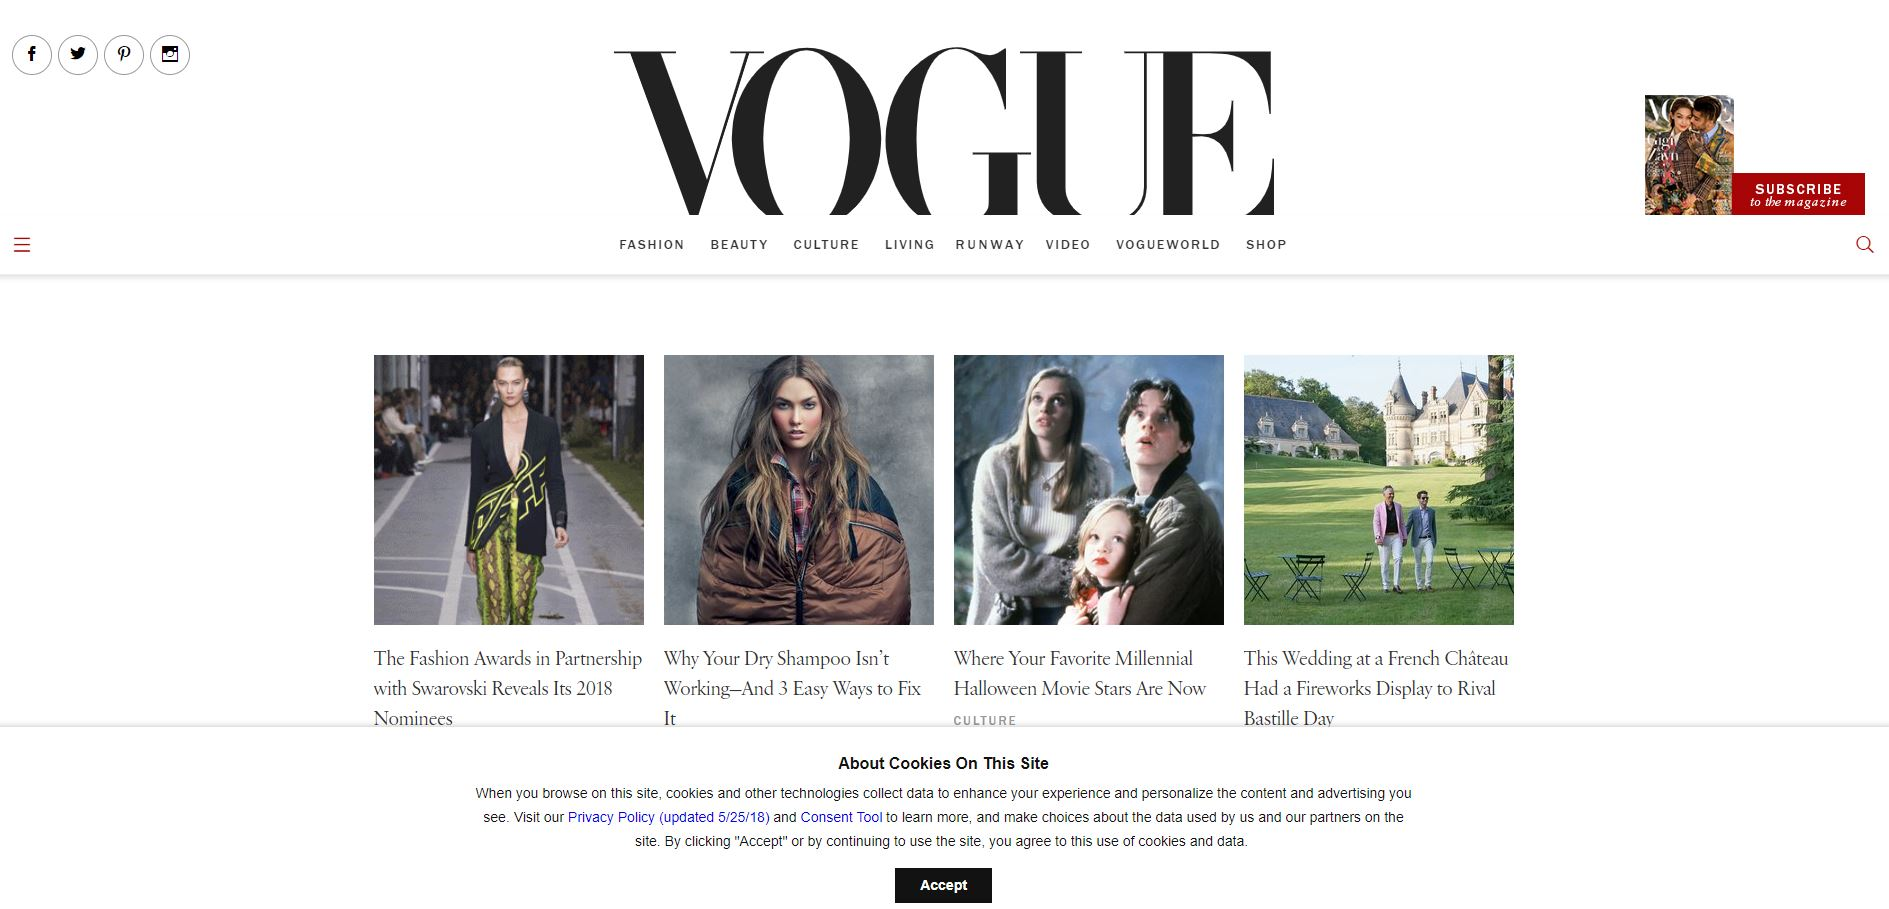 pagina web vogue wordpress